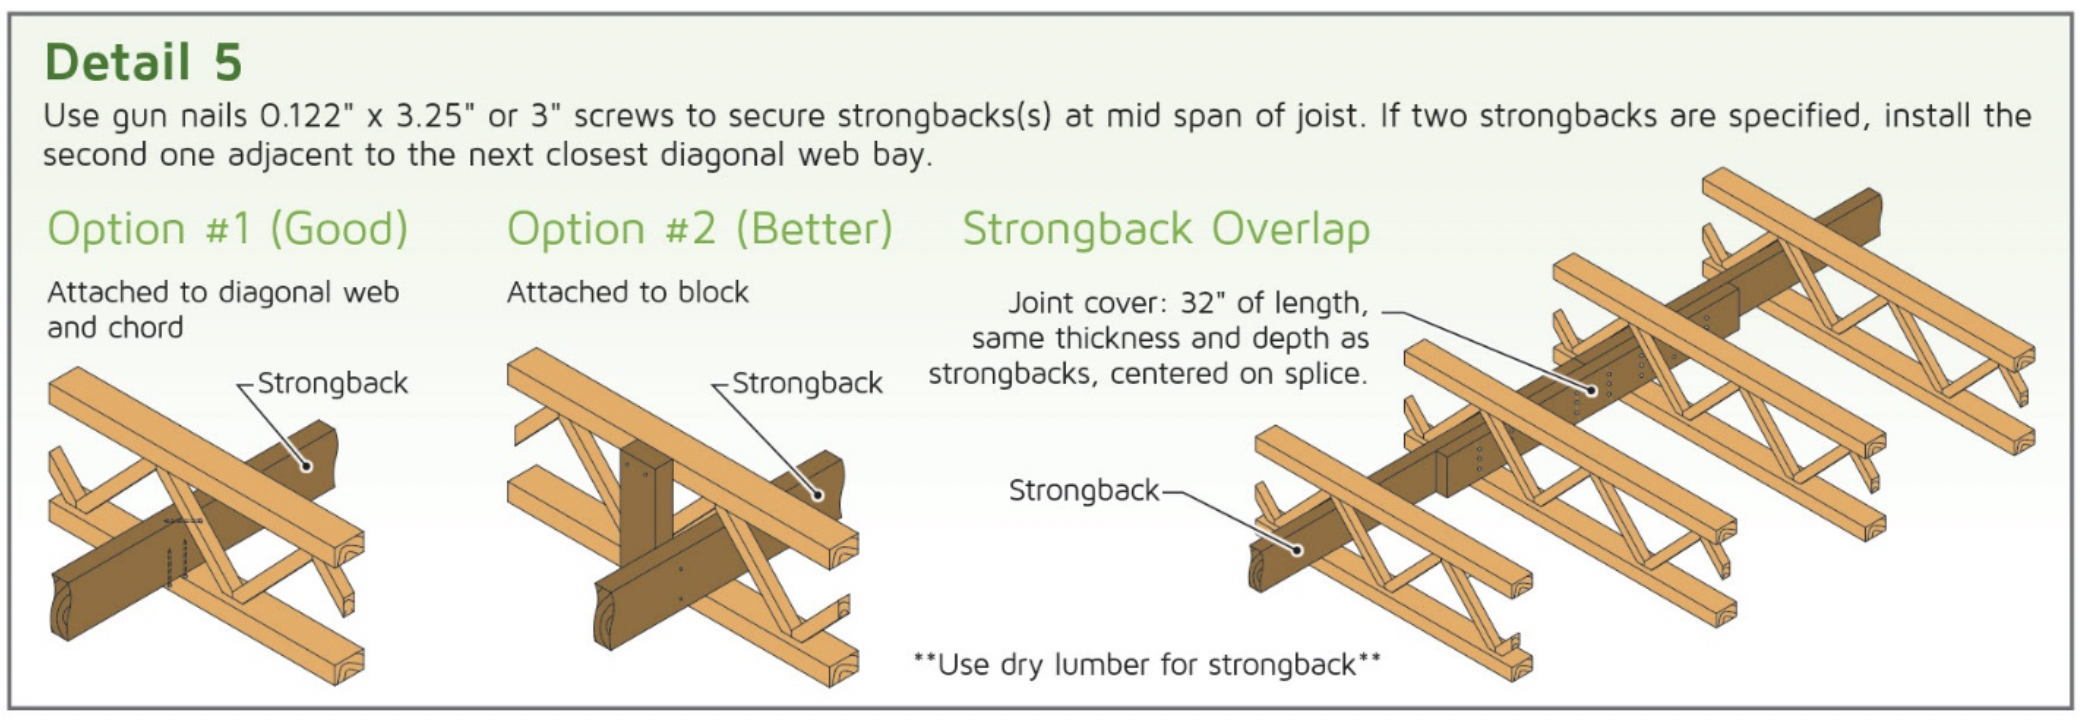 strongback detail 5